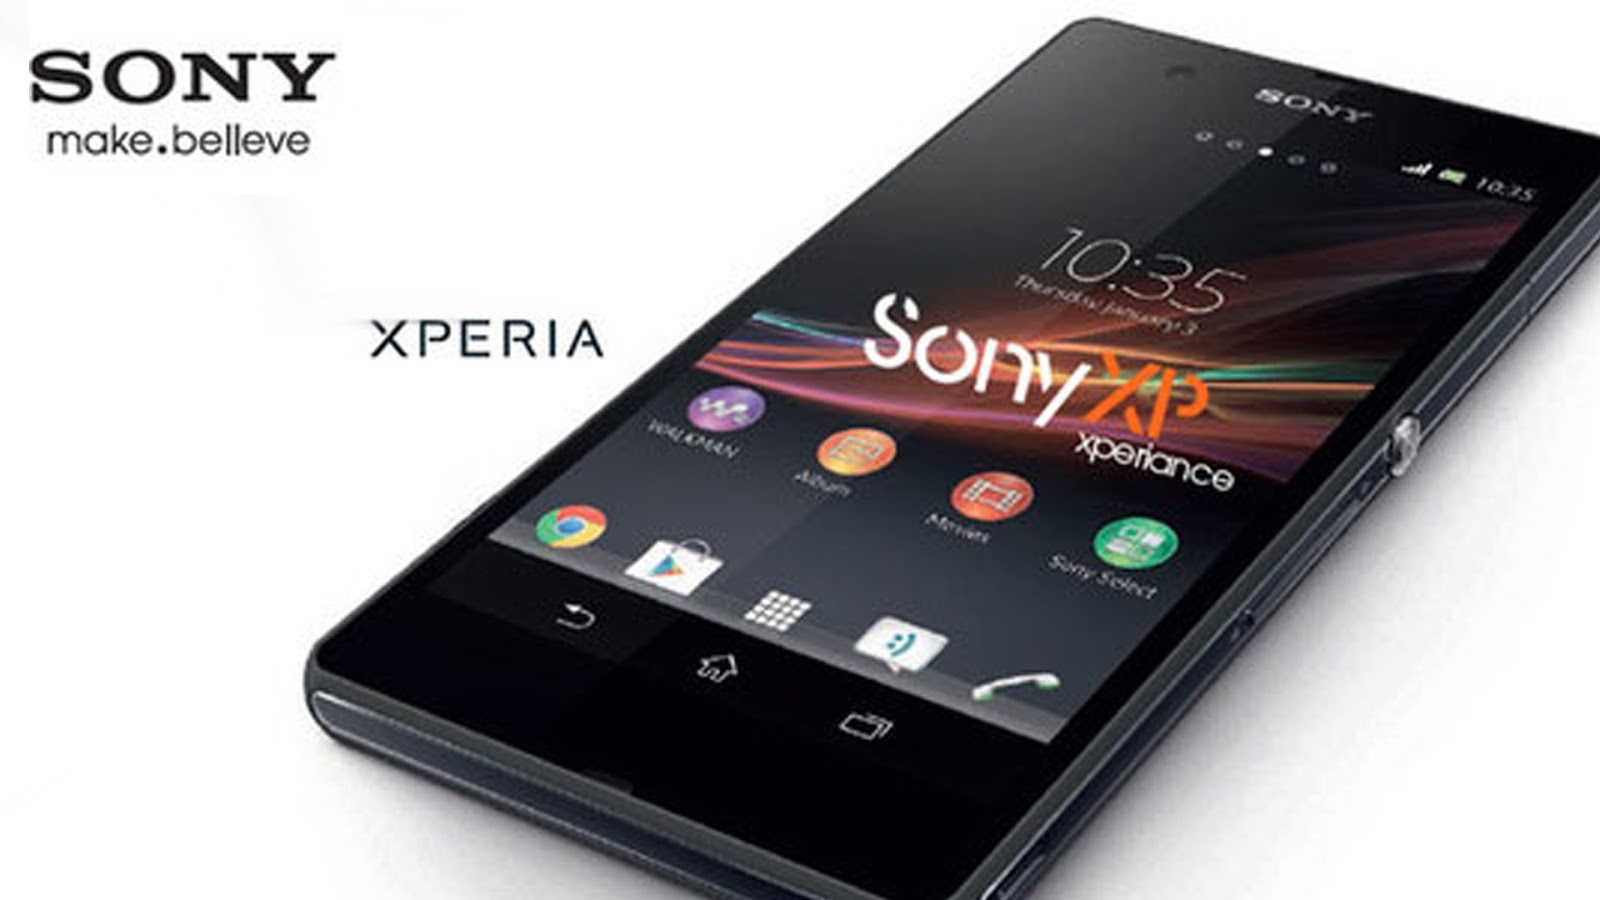 sony ericsson xperia z hd wallpapers � wallpaper202